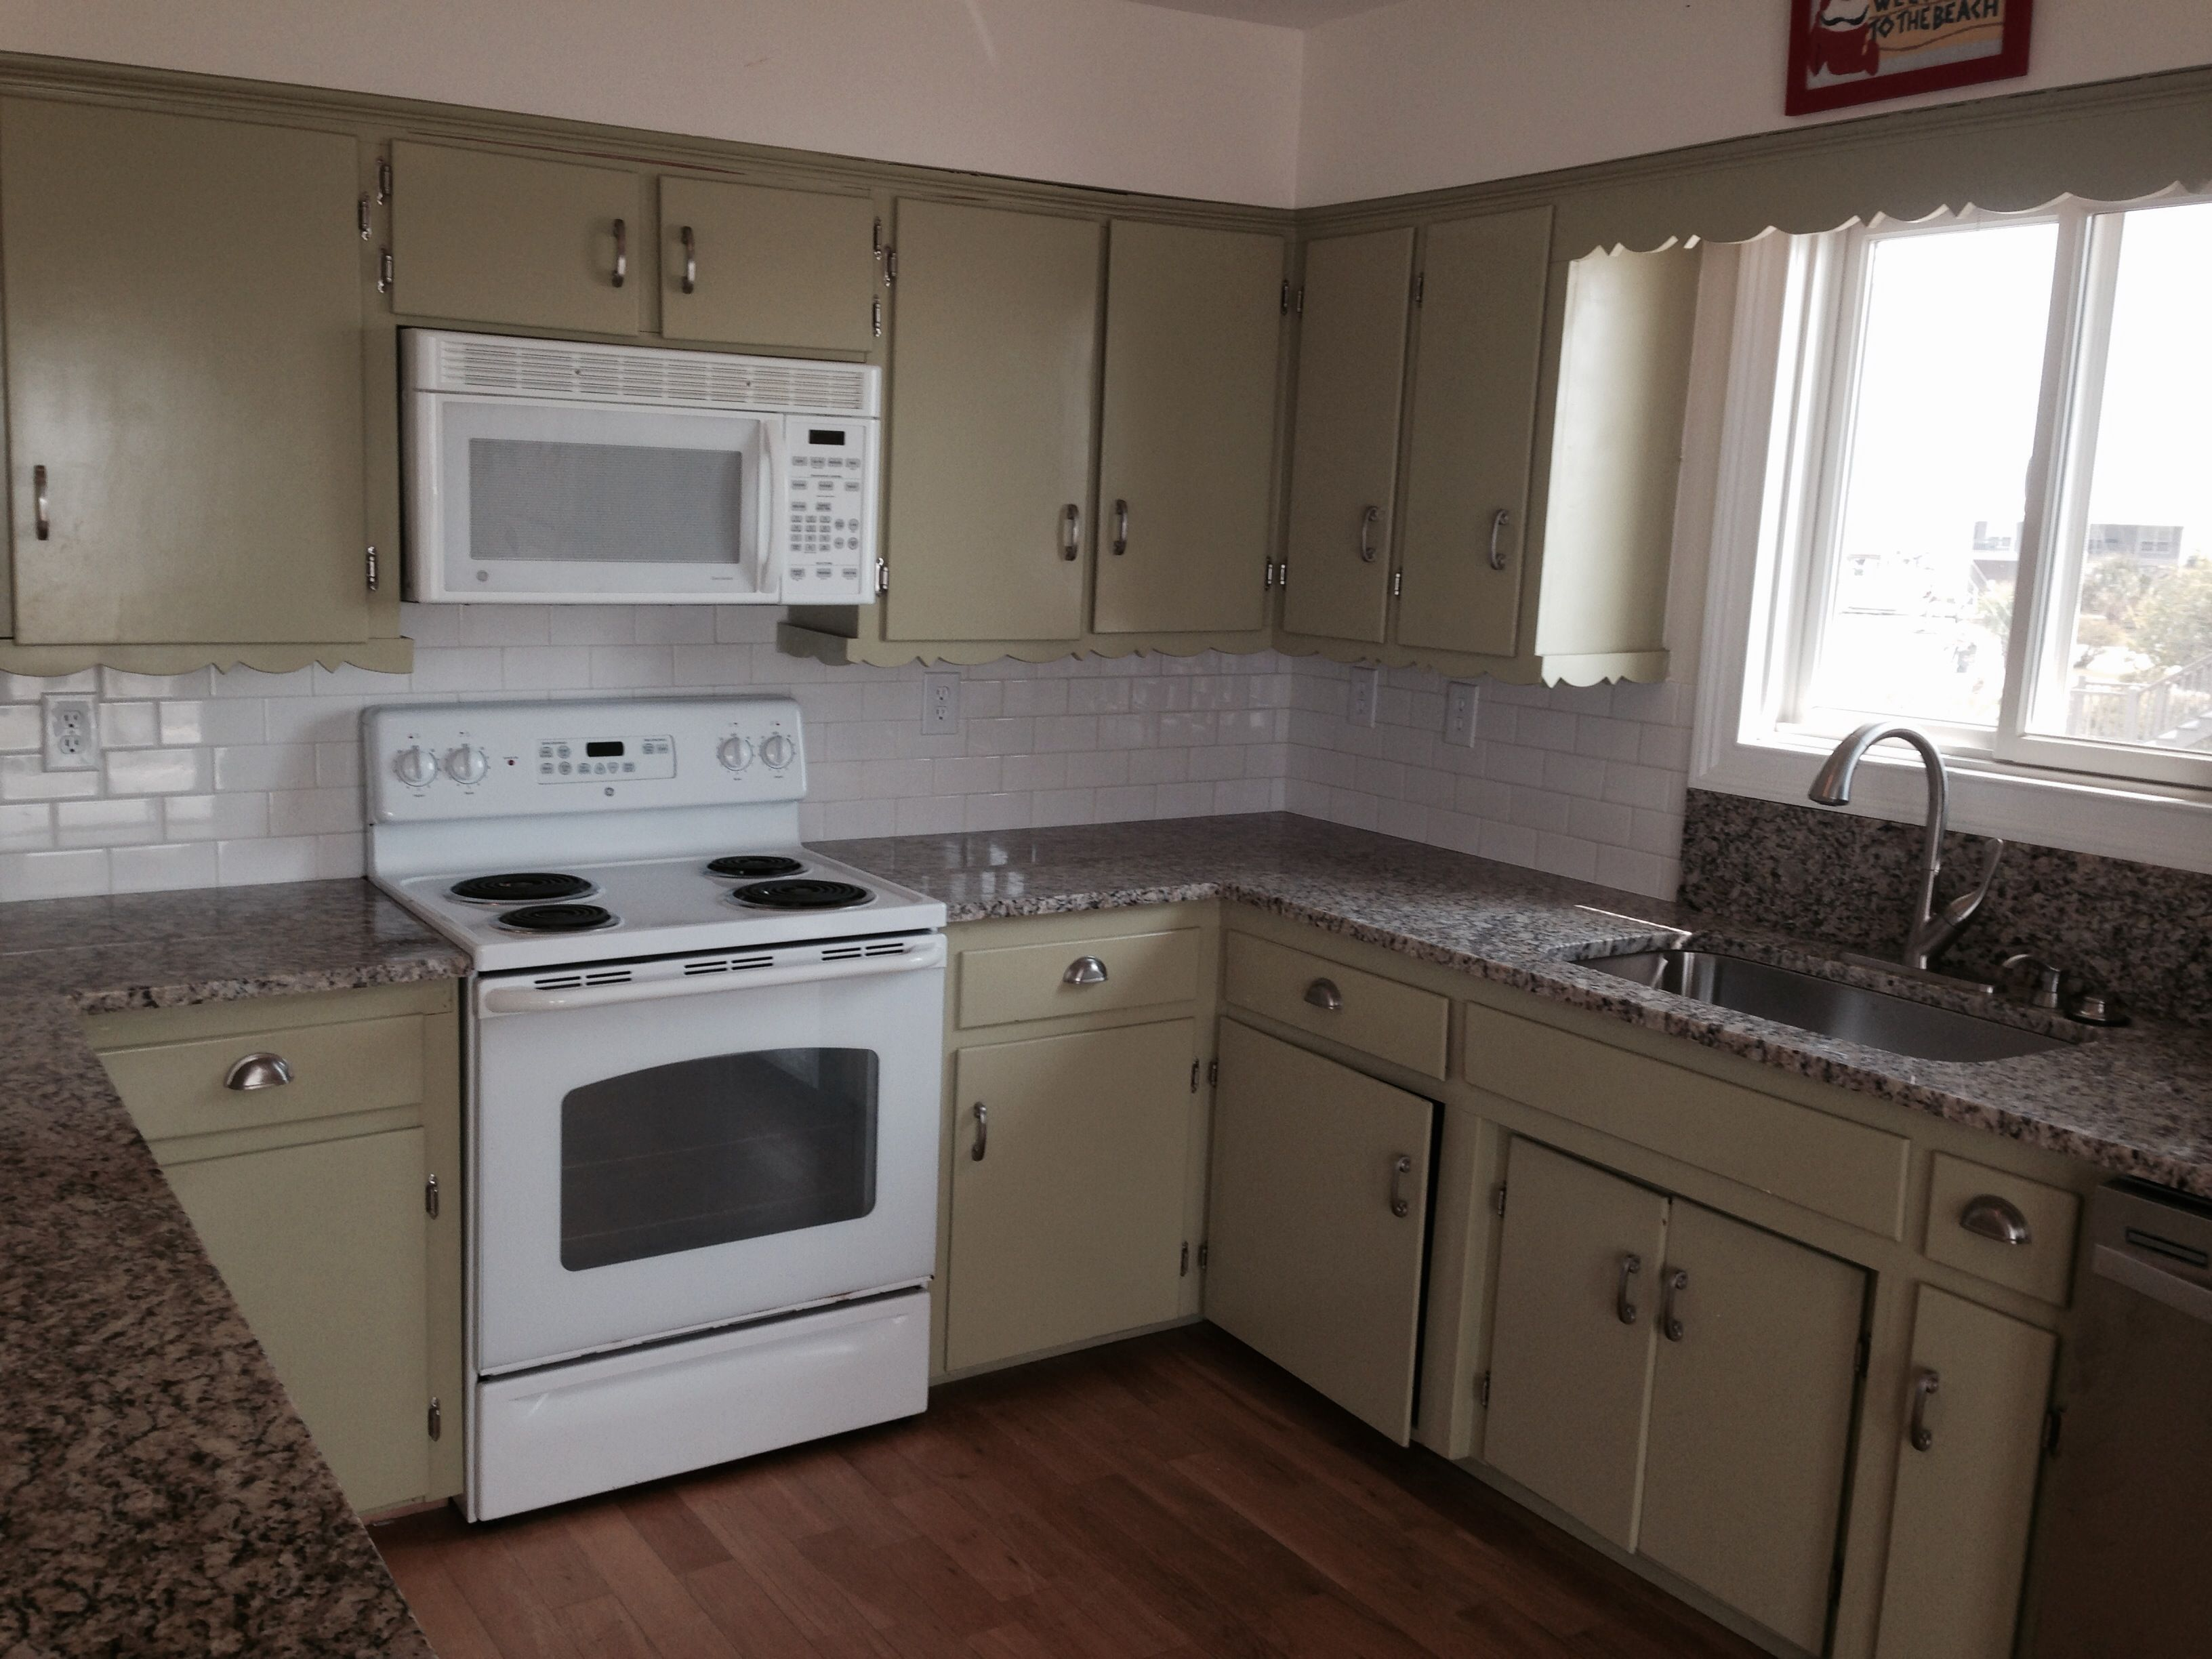 Great 2 X 6 Glass Subway Tile Huge 2 X 8 Subway Tile Clean 2X2 Black Ceiling Tiles 2X4 Ceramic Tile Young 2X4 Glass Subway Tile Yellow2X4 Subway Tile Backsplash Greer Residence Kitchen Venetian Ice Granite Counter Tops With ..